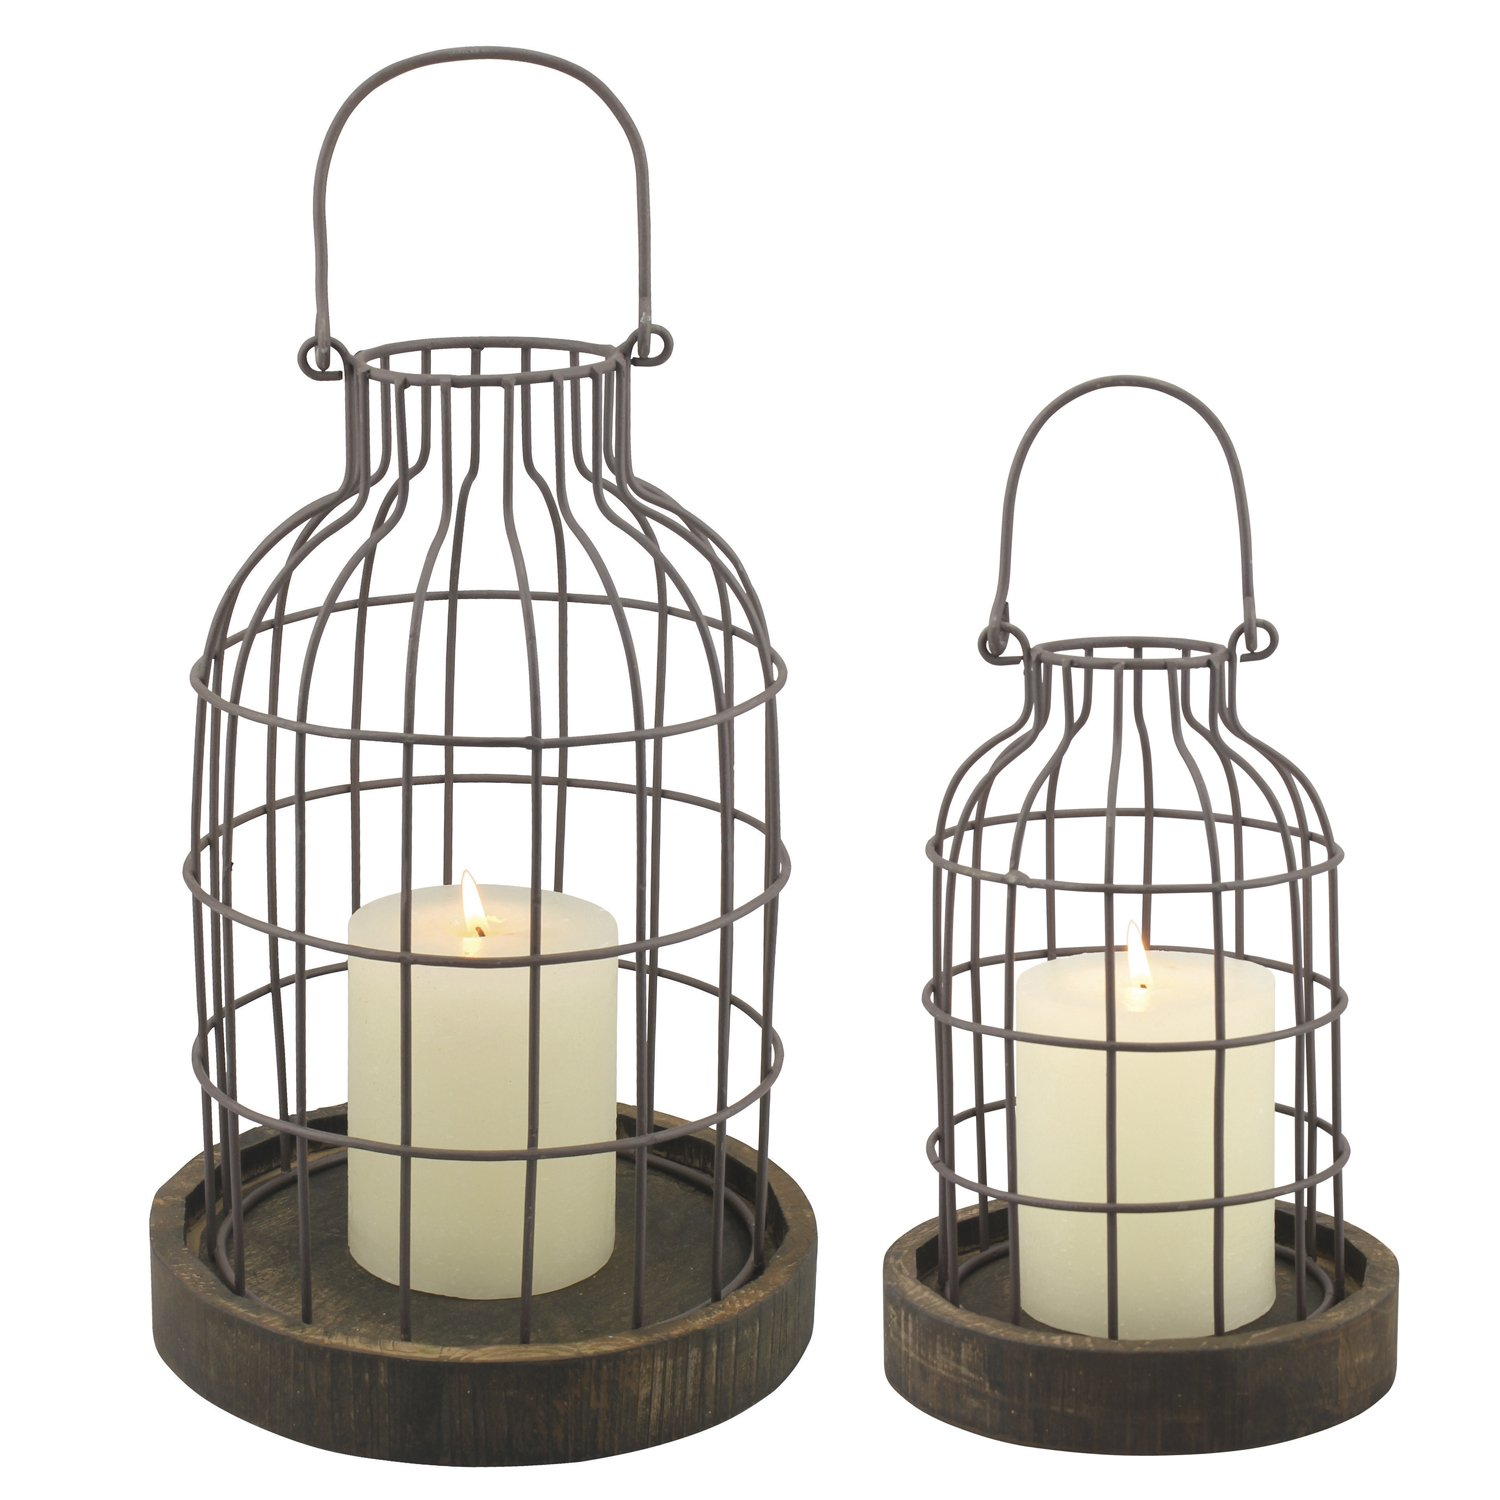 Stonebriar Rustic Metal Wire Cage Cloche Set with Rustic Wooden Bases, Industrial and Farmhouse Home Decor Accents, Display Flowers, Succulents, Air Plants, Fairy Lights, Decorative Fill, and More by Stonebriar